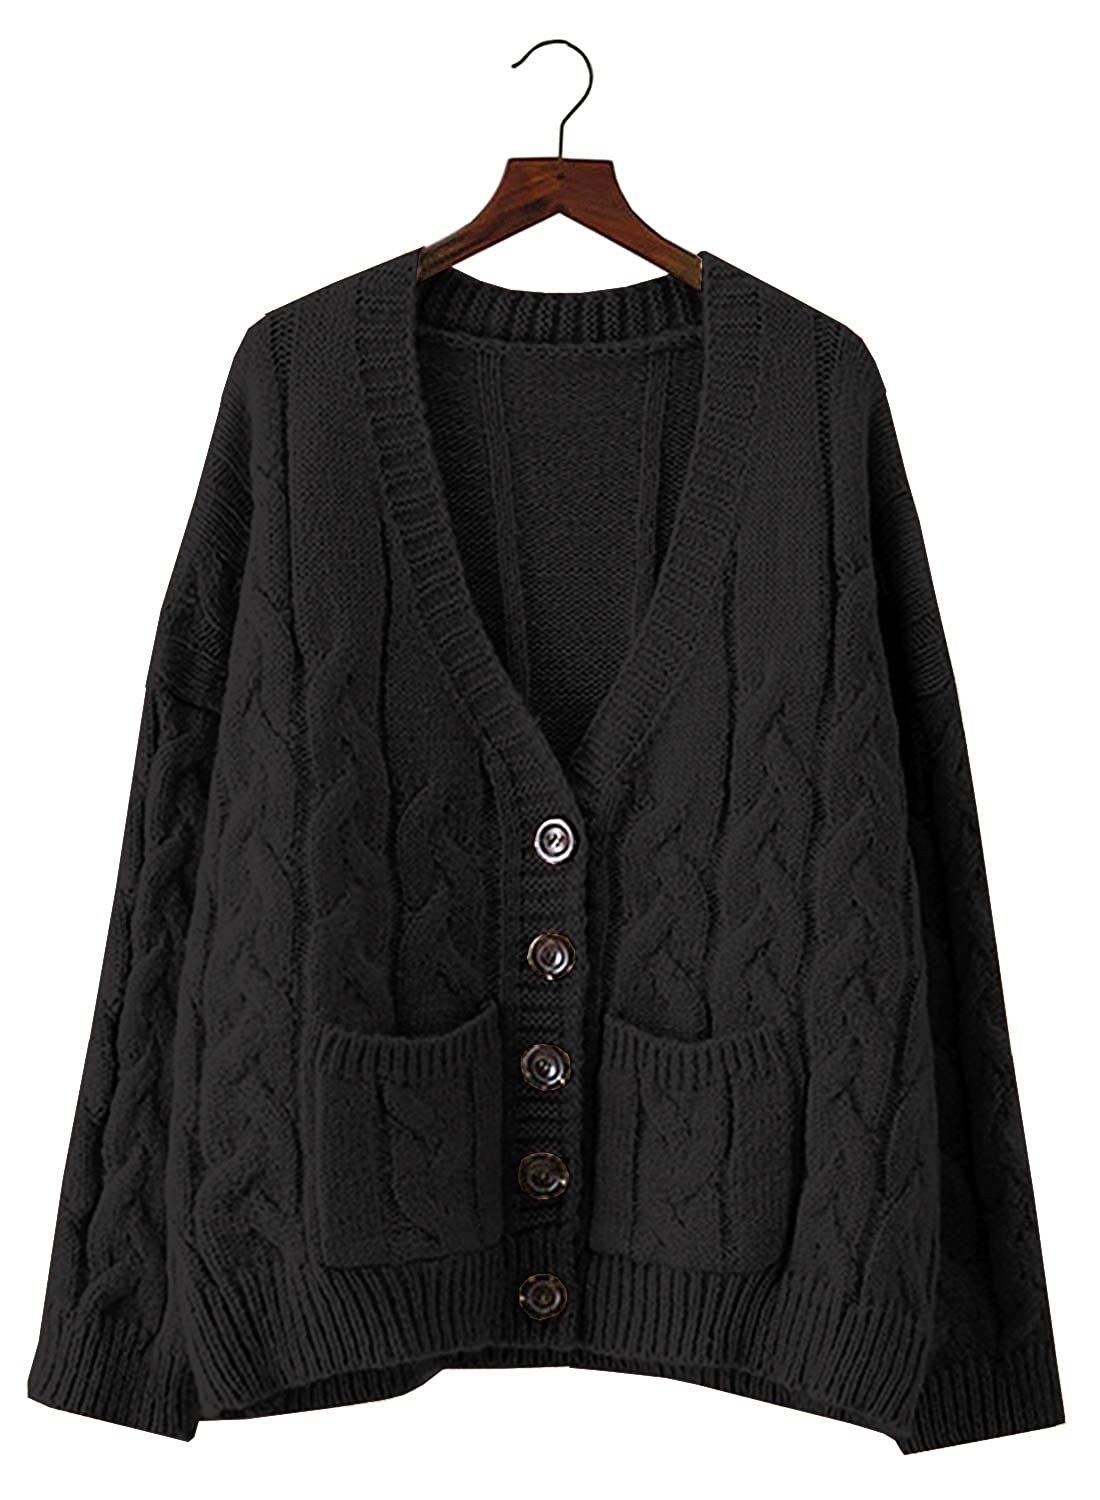 Doballa Women s Slouchy Grandad Cable Knit Button Down Chunky Cardigan  Sweater with Pockets (One Size d1ac894ea